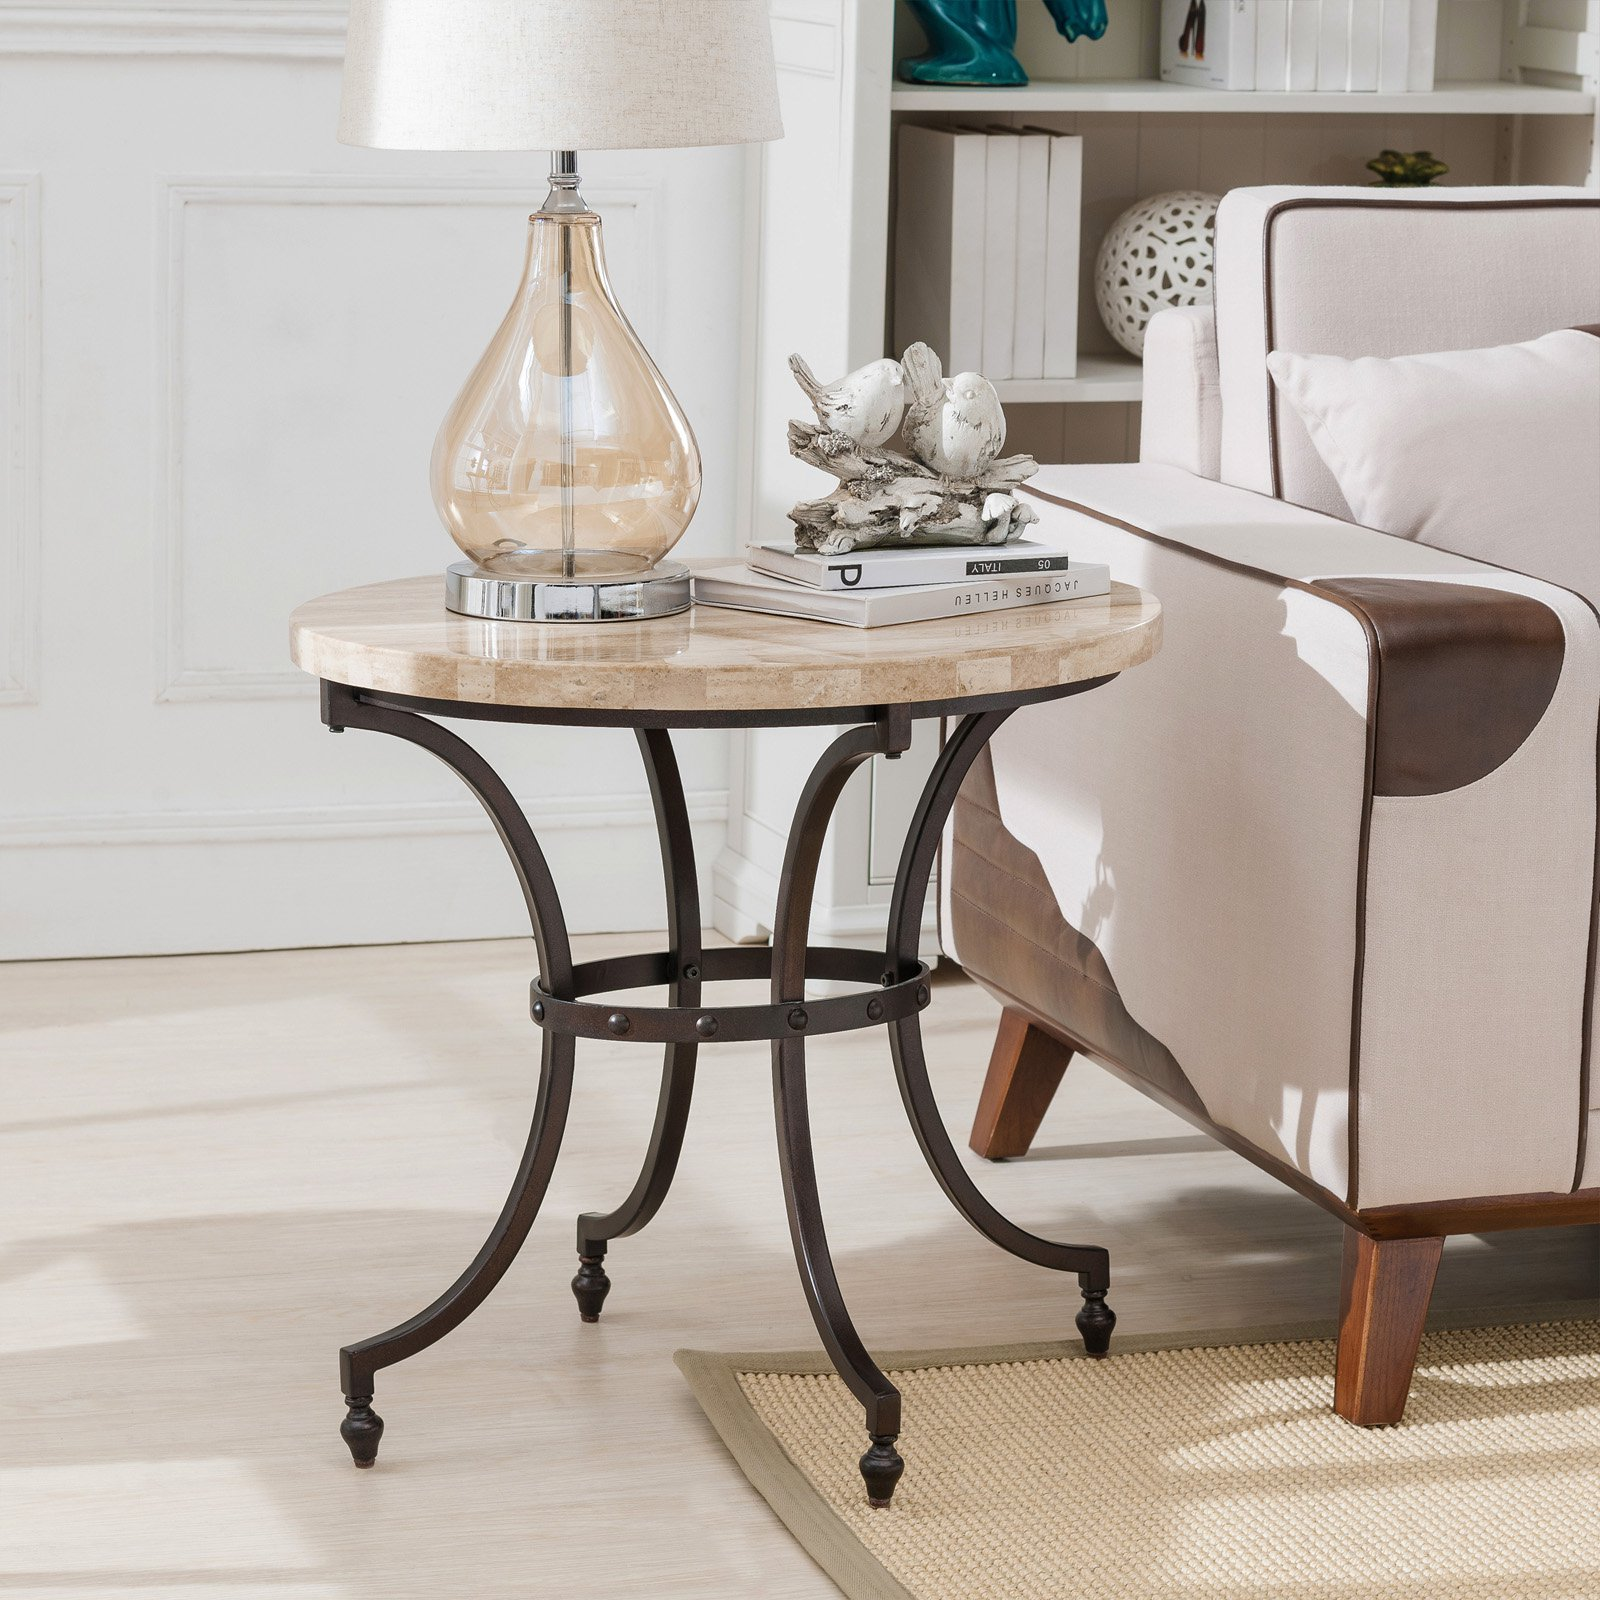 Leick Home Oval Travertine Stone Top Side Table with Rubbed Bronze Metal Base